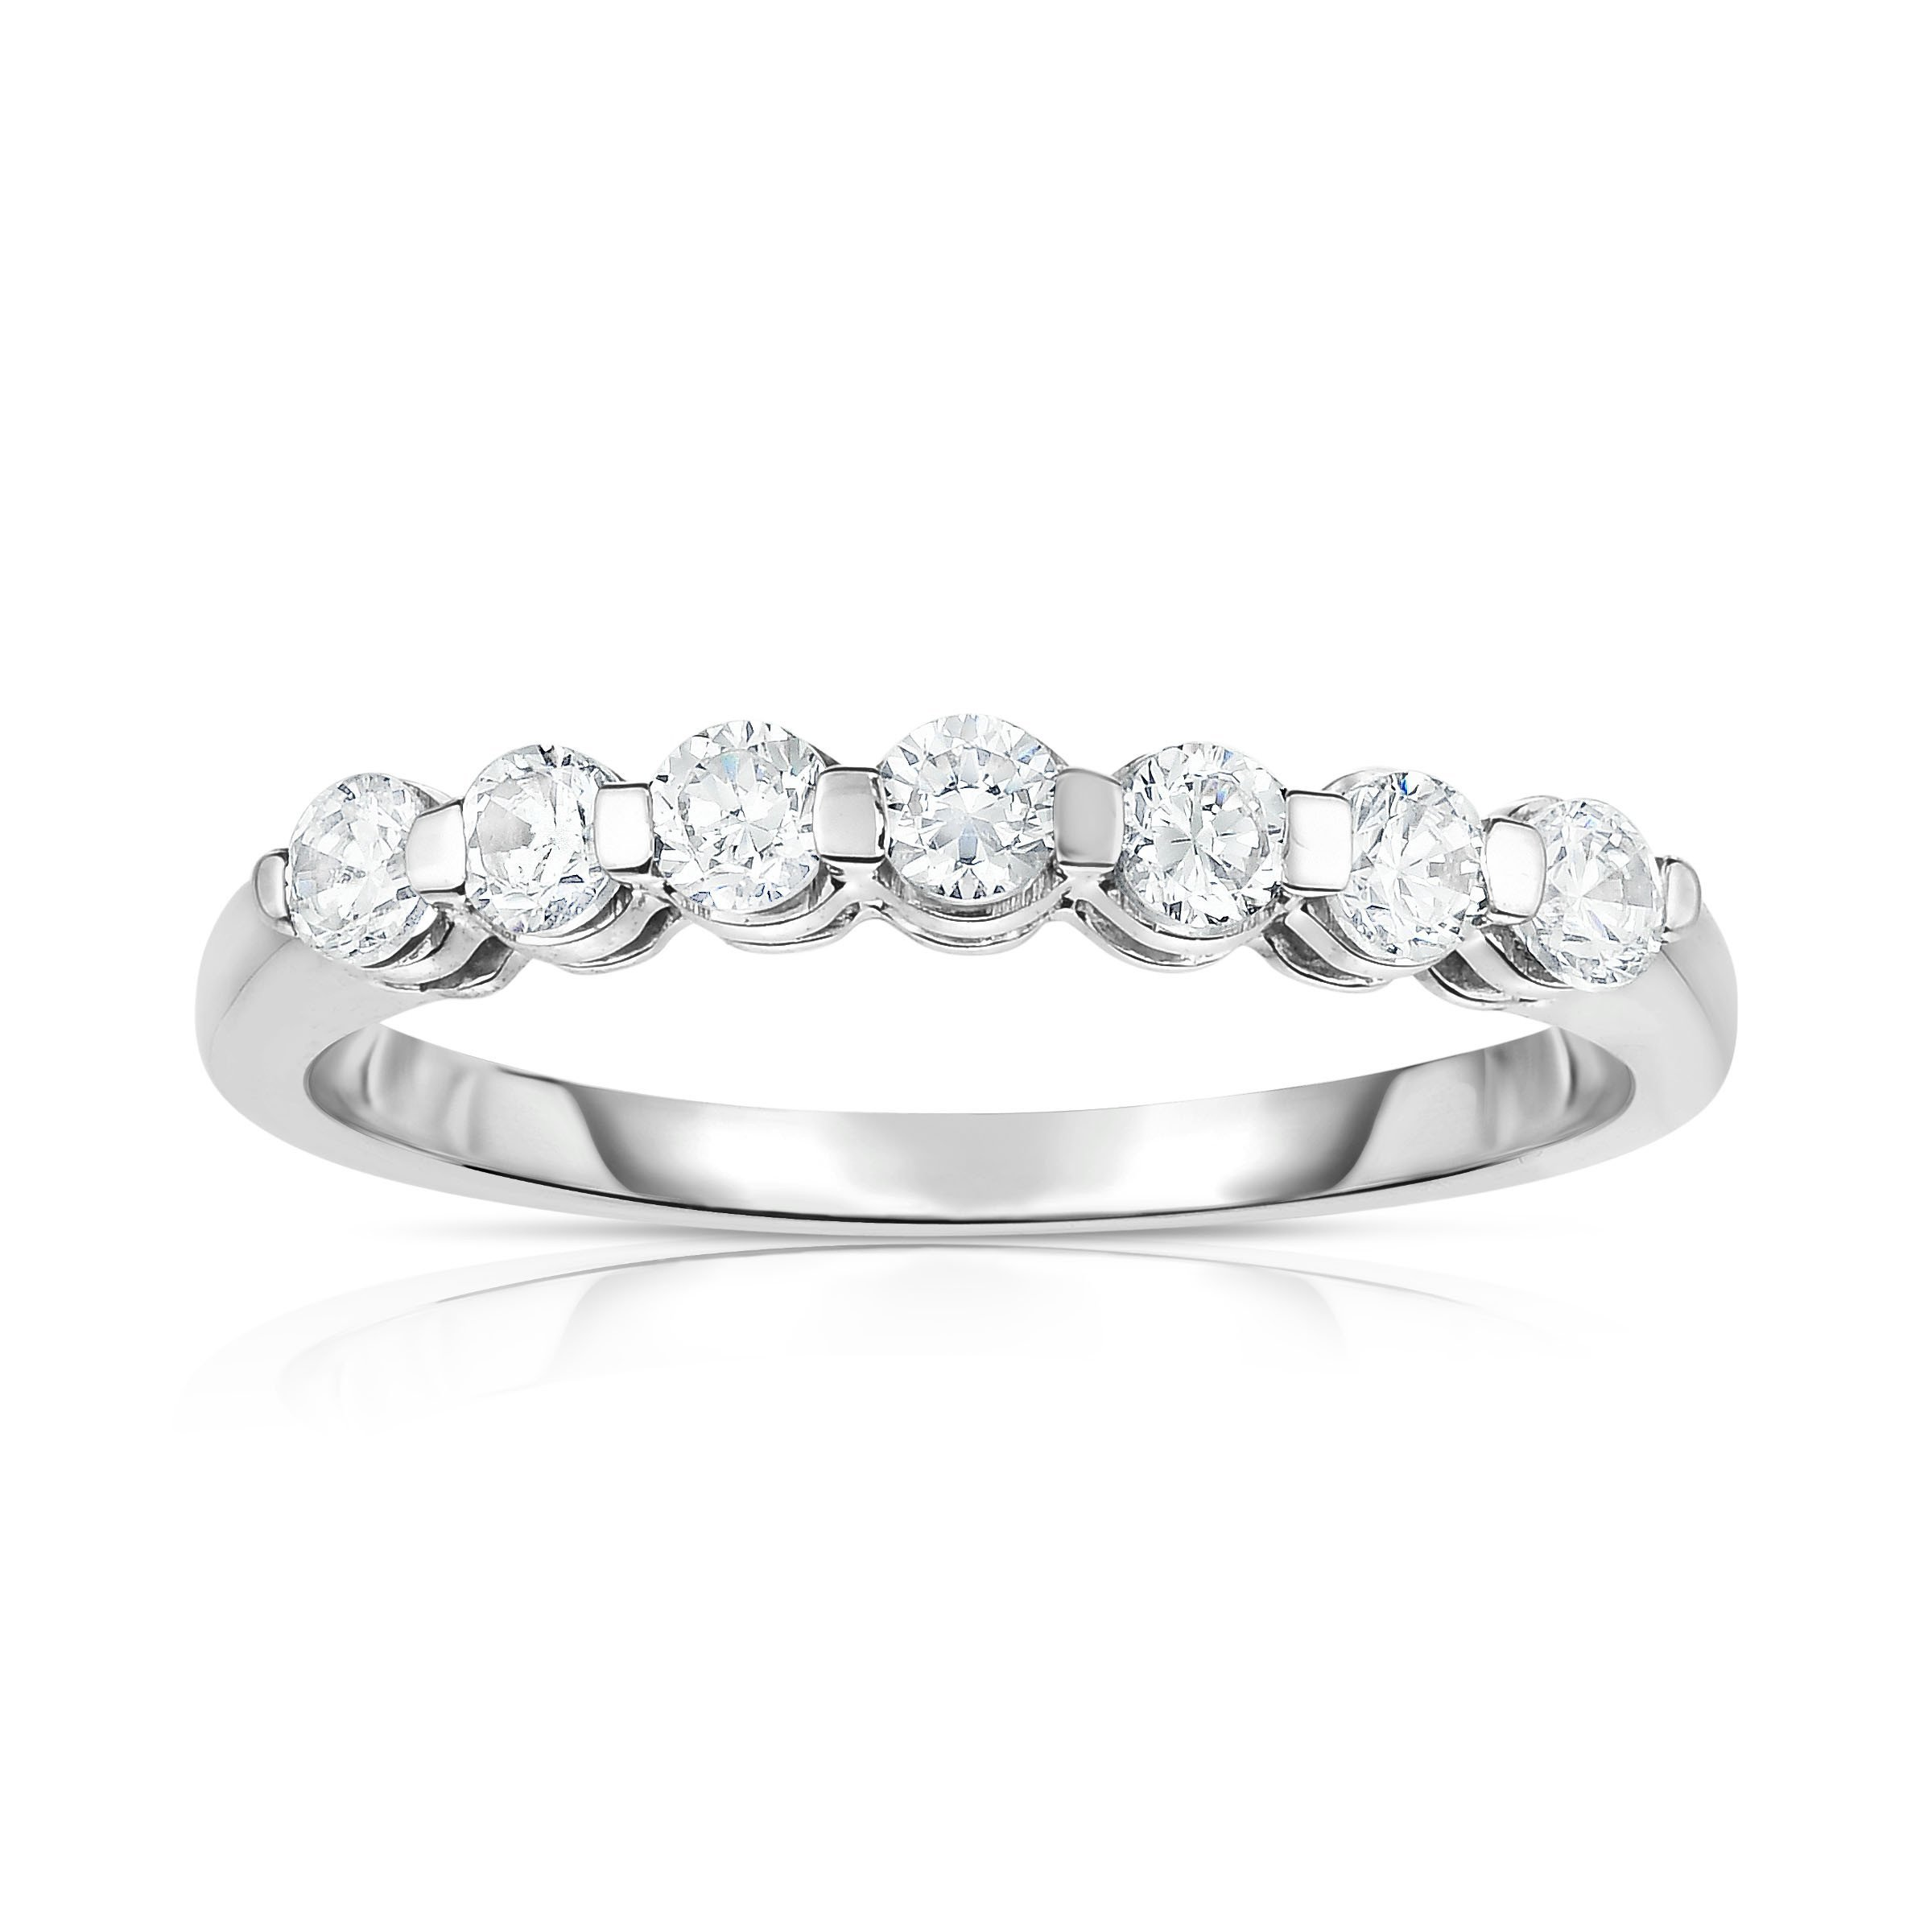 Noray Designs 14K White Gold 7-Stone Single Prong Diamond (0.45 Ct, G-H Color, SI2-I1 Clarity) Ring